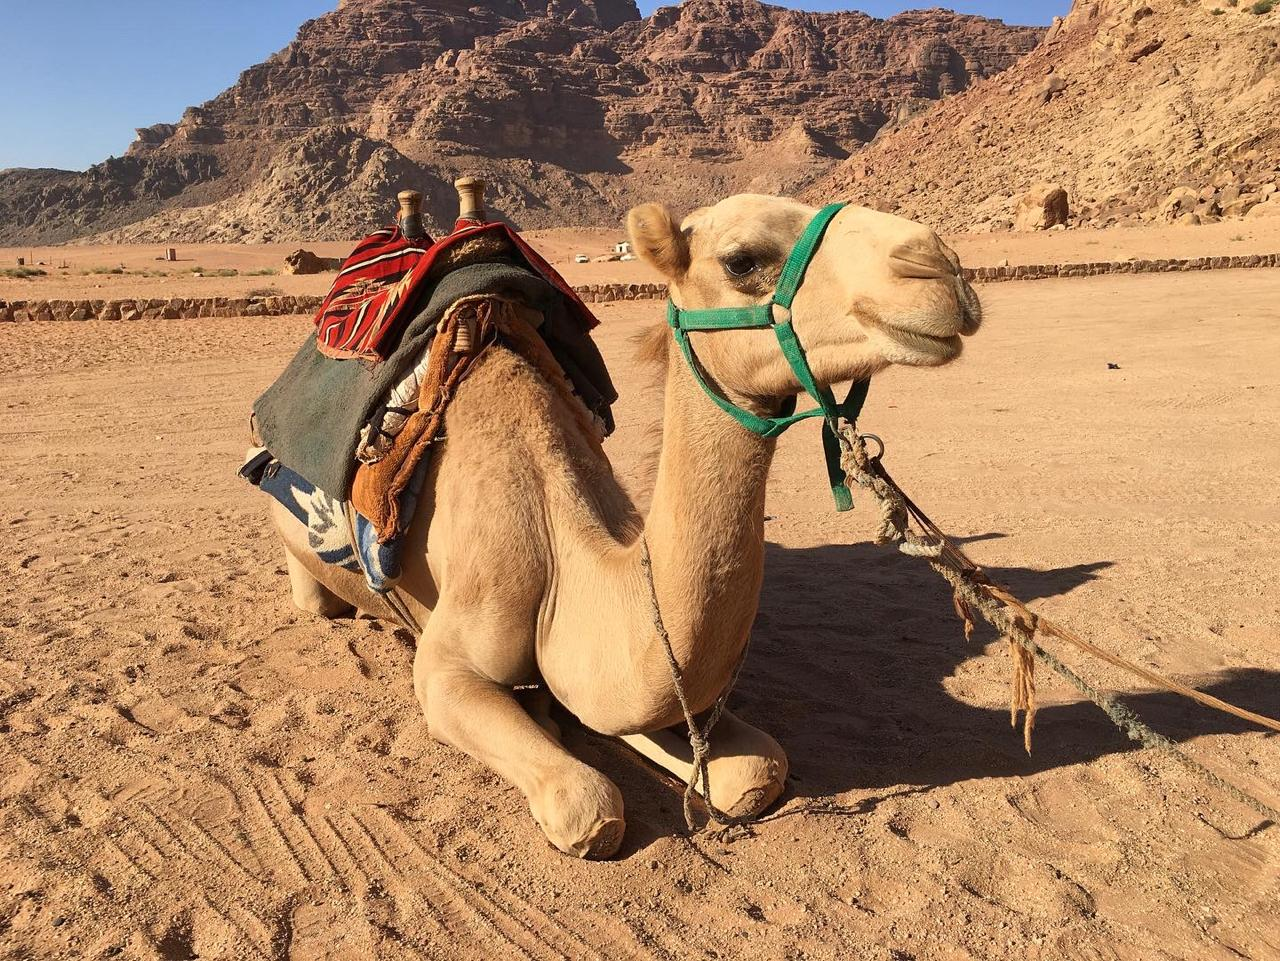 camel ride, taxi number 1 in Wadirum